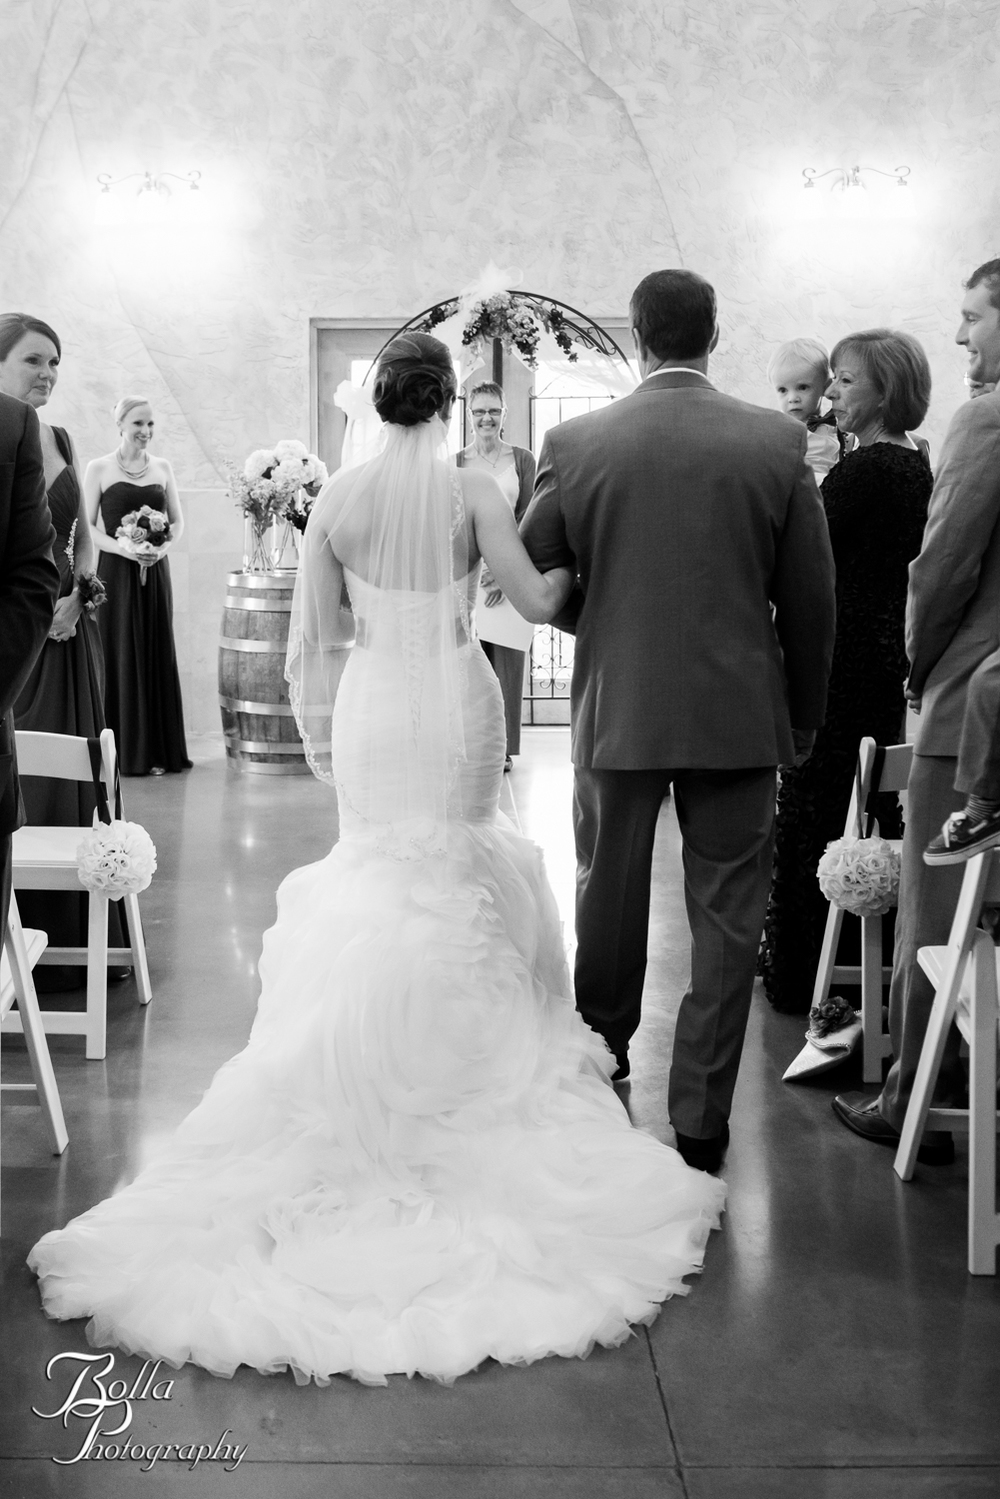 Bolla_Photography_St_Louis_wedding_photographer_Villa_Maire_Winery-0241.jpg